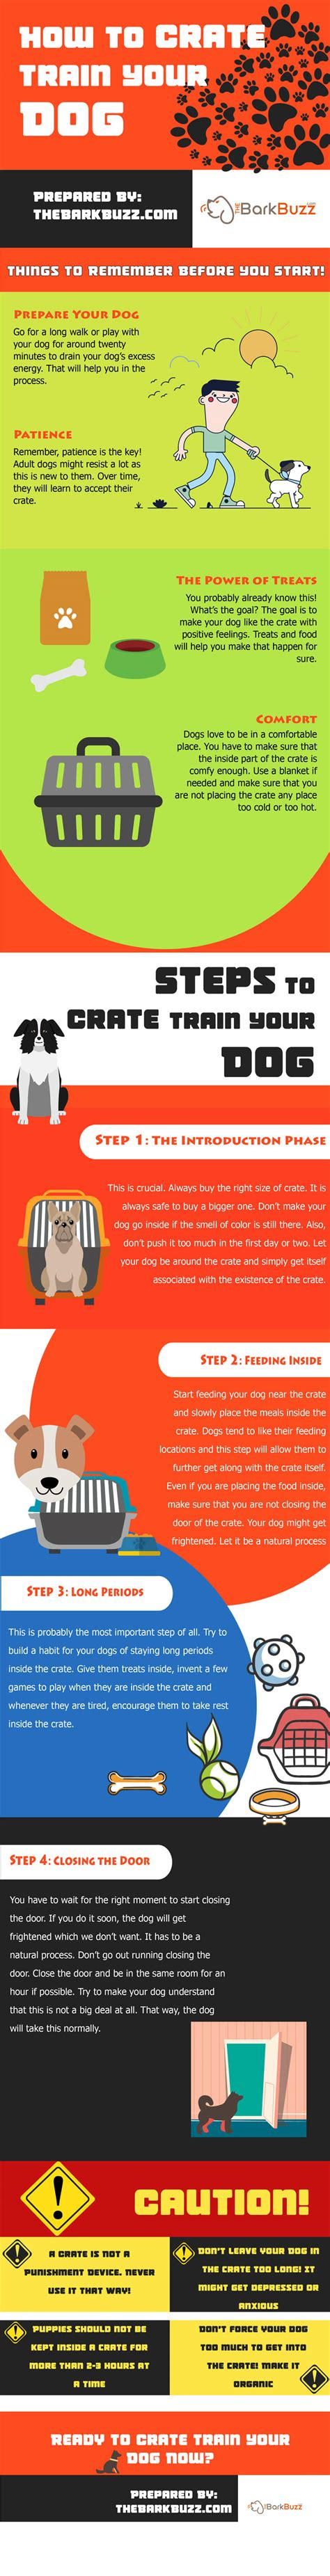 crate your how to crate your infographic